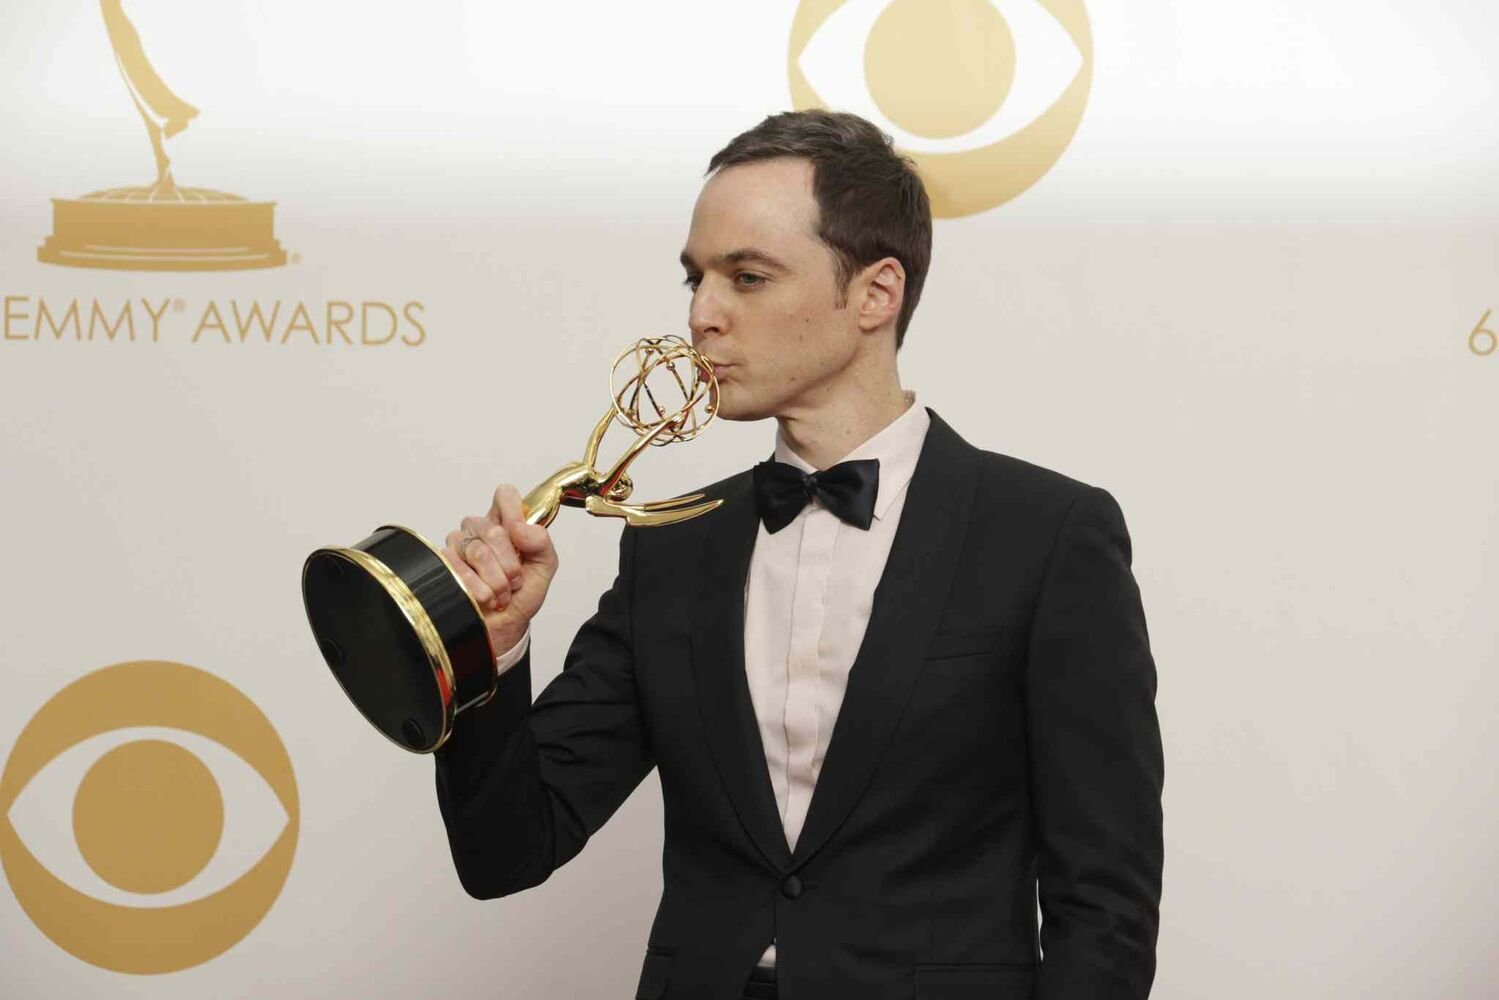 Jim Parsons kisses his Emmy backstage the 65th annual Primetime Emmy Awards on Sunday in Los Angeles. Parsons again claiming the top comedy acting trophy for The Big Bang Theory. Parsons added to the awards he won in 2011 and 2010 for the role of a science nerd.